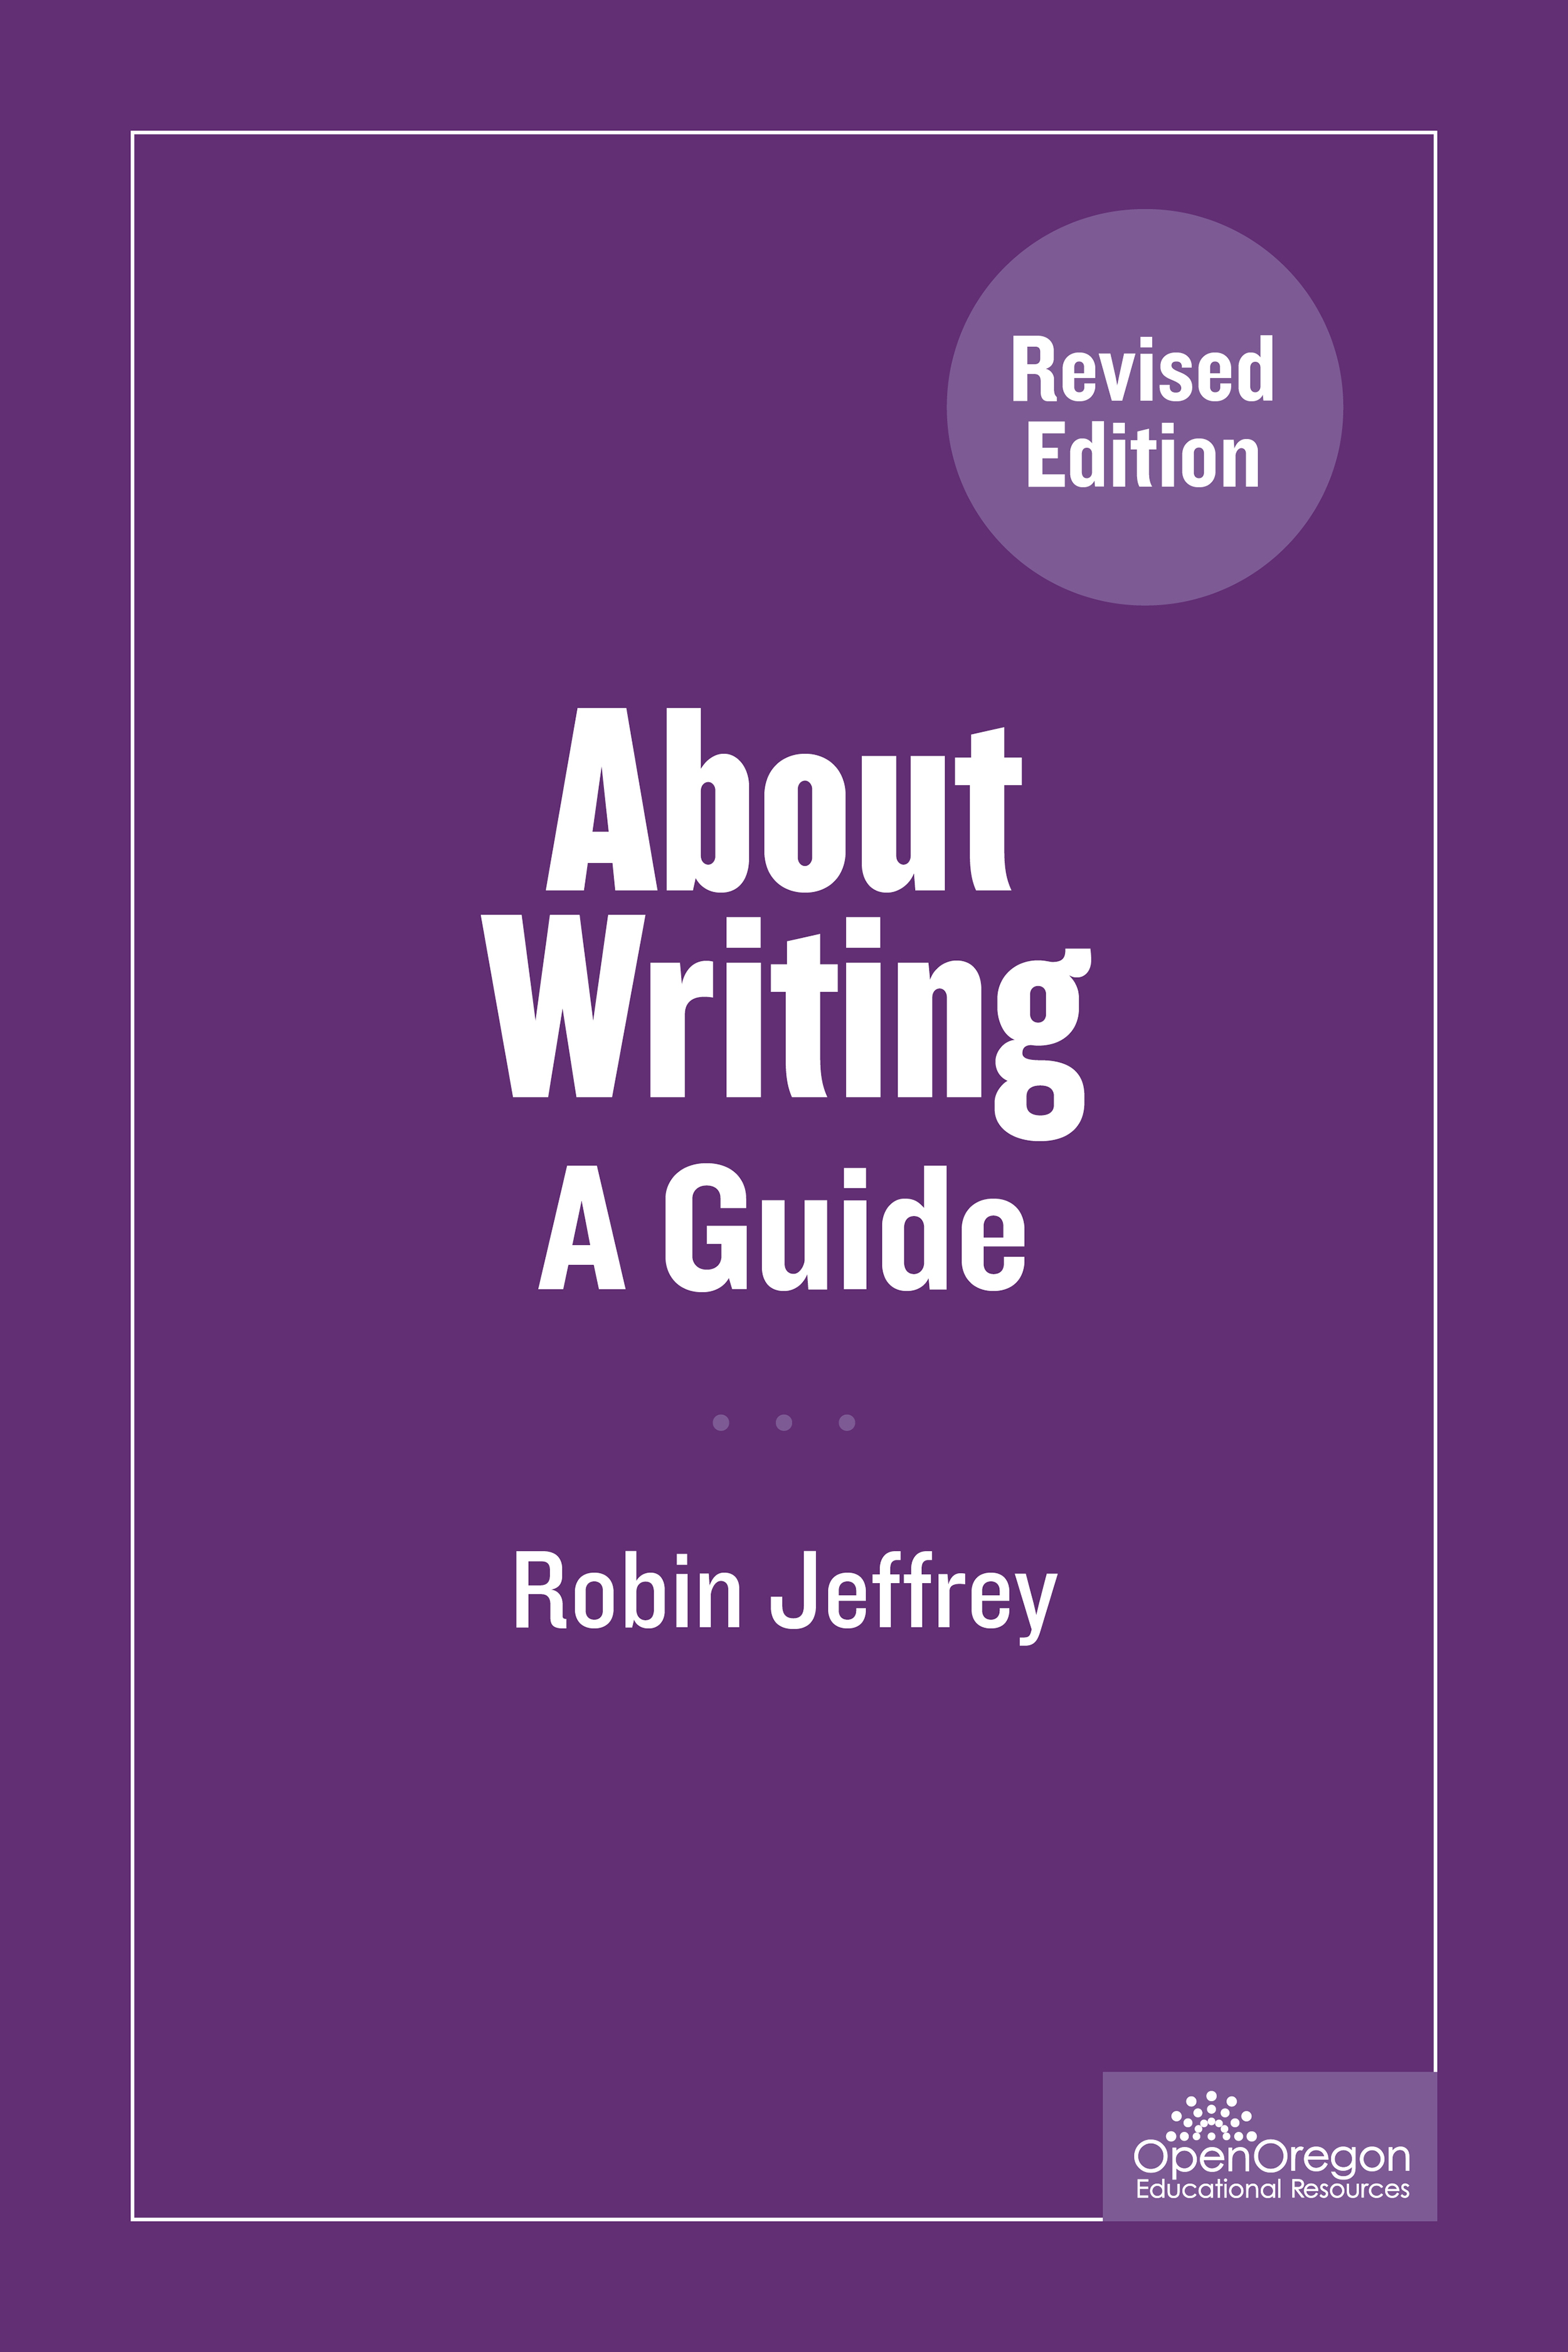 About Writing: A Guide